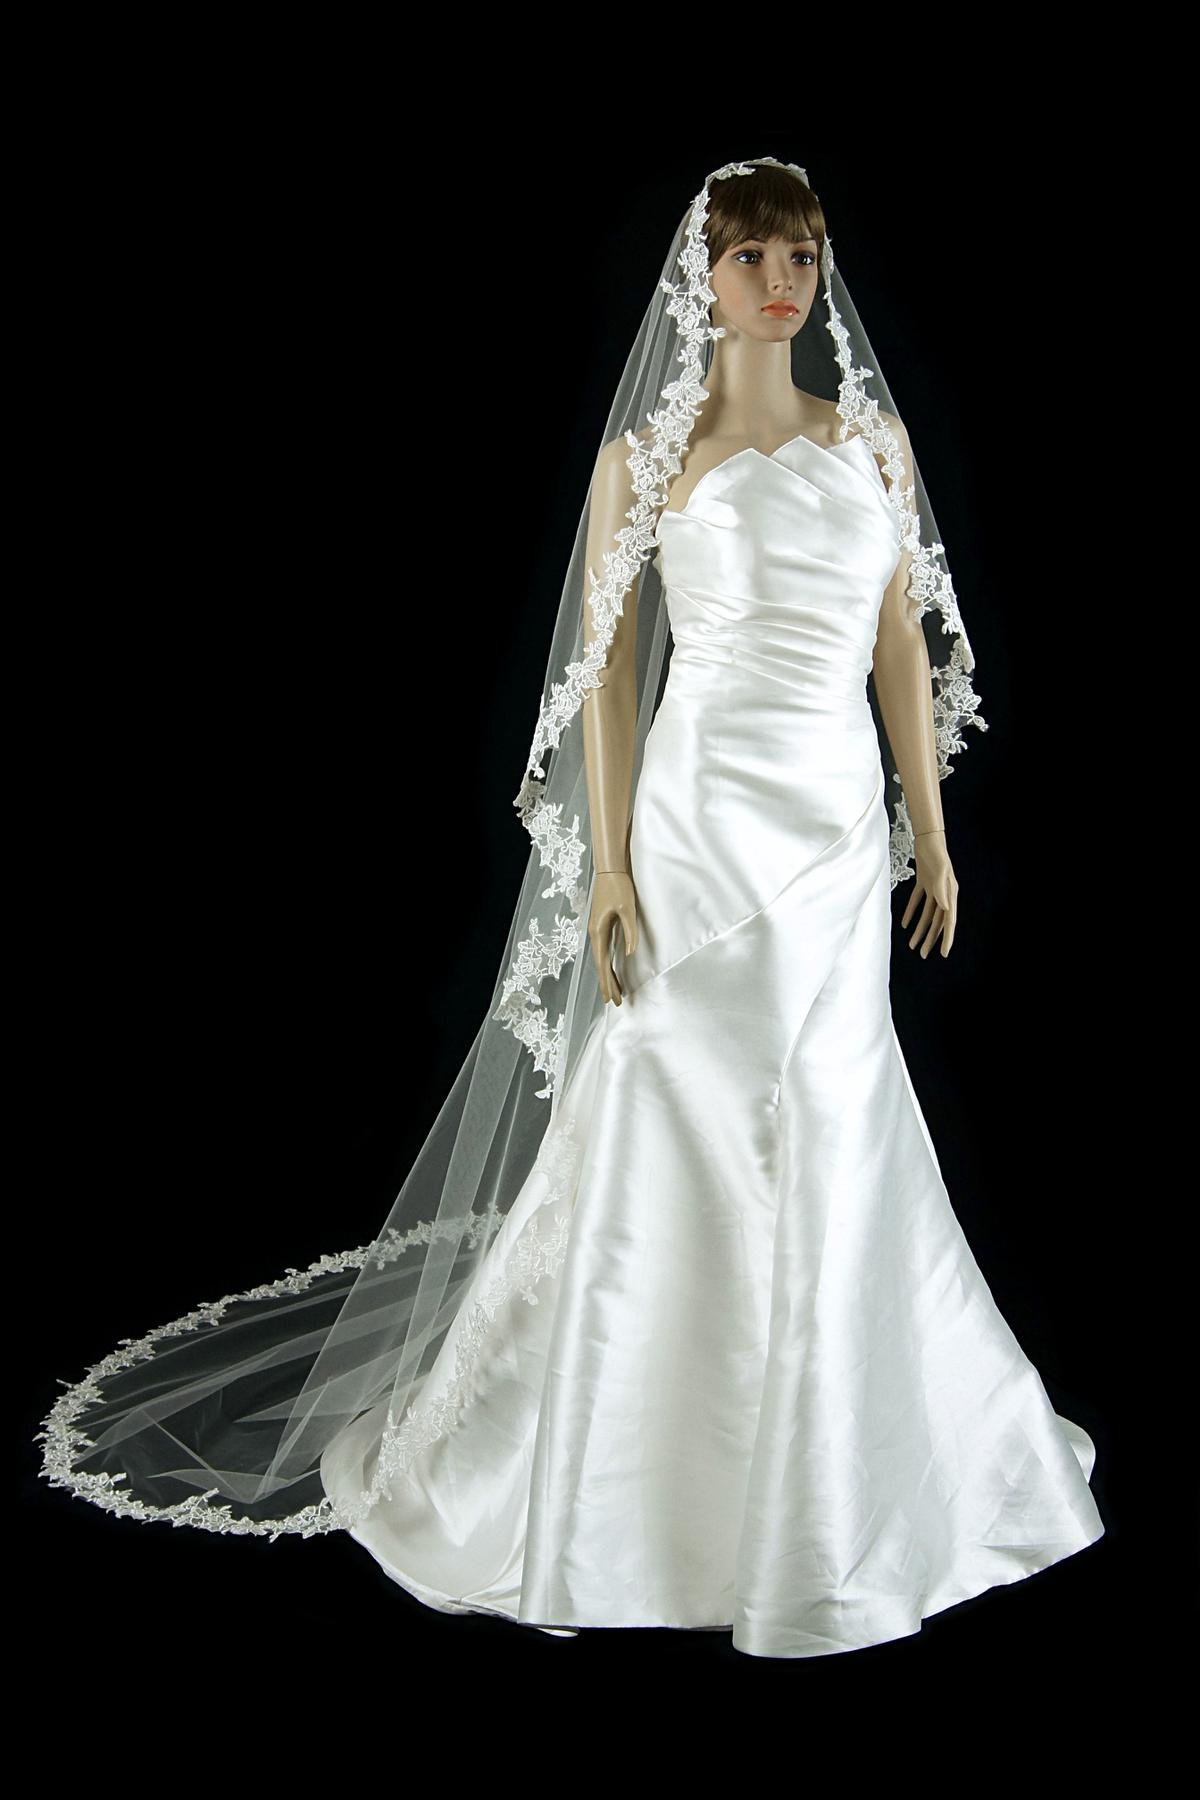 Bridal Mantilla Veil Ivory 1 Tier Long Cathedral Length With Simple Lace Edge by Velvet Bridal (Image #2)